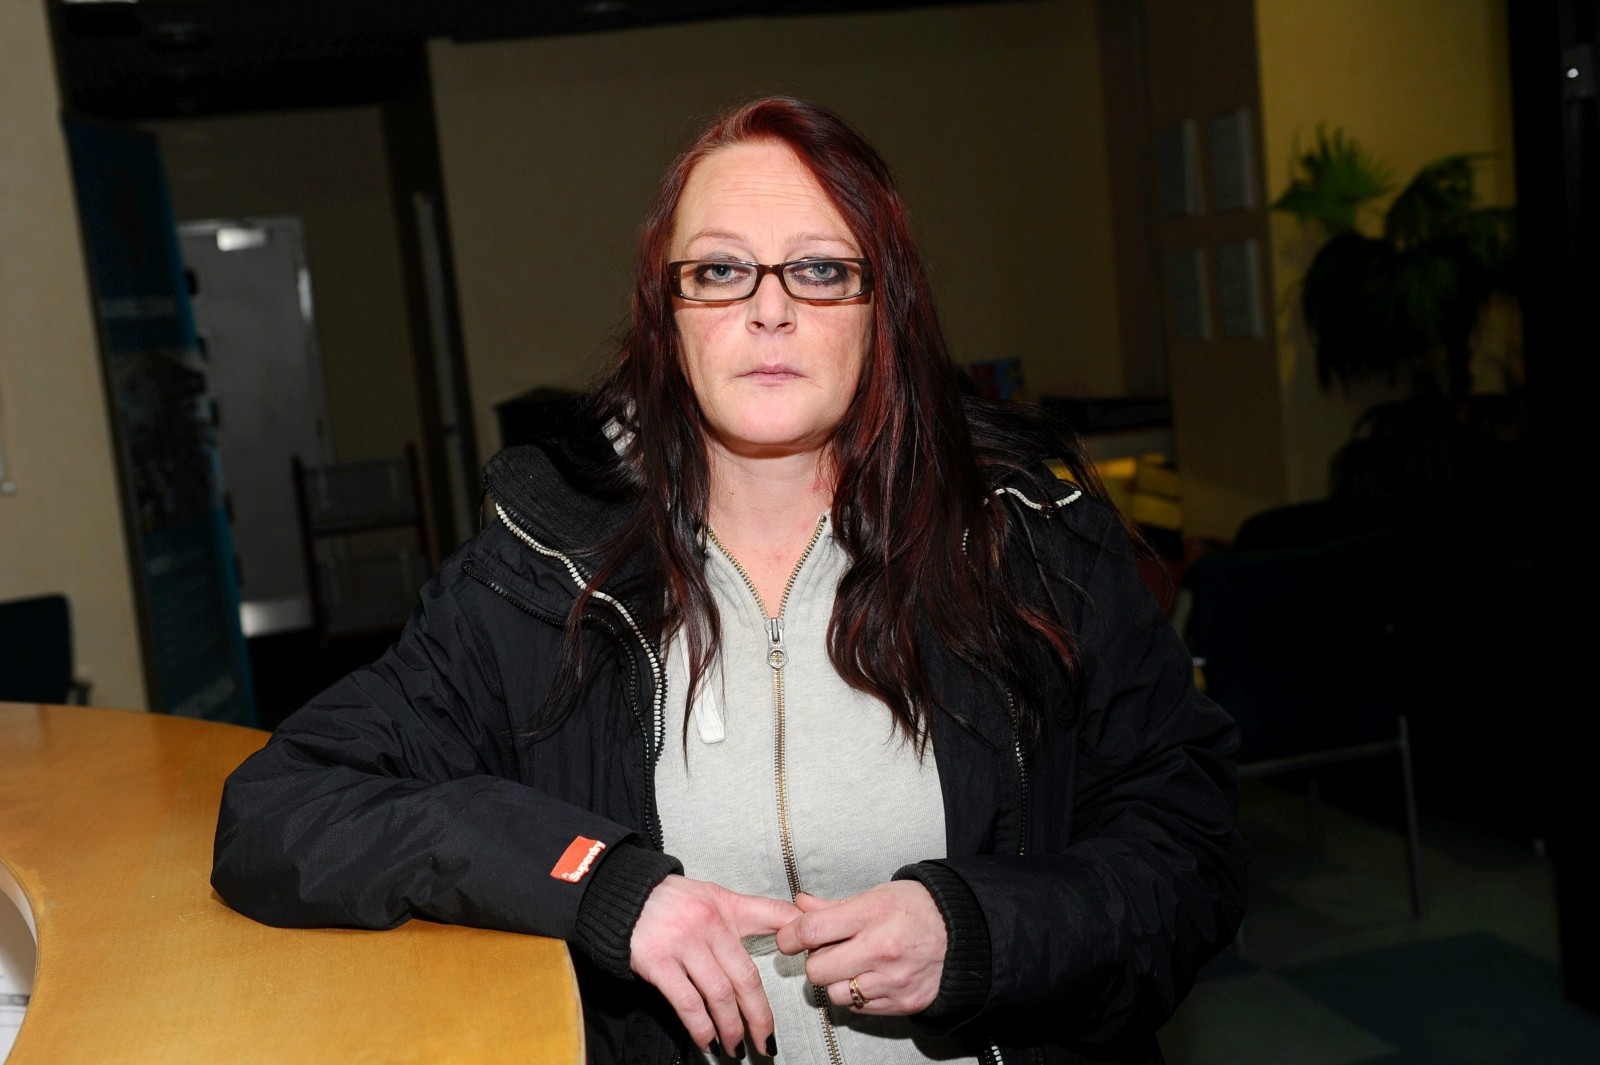 Woman who desperately paid her violent partner £15 to stop the beatings